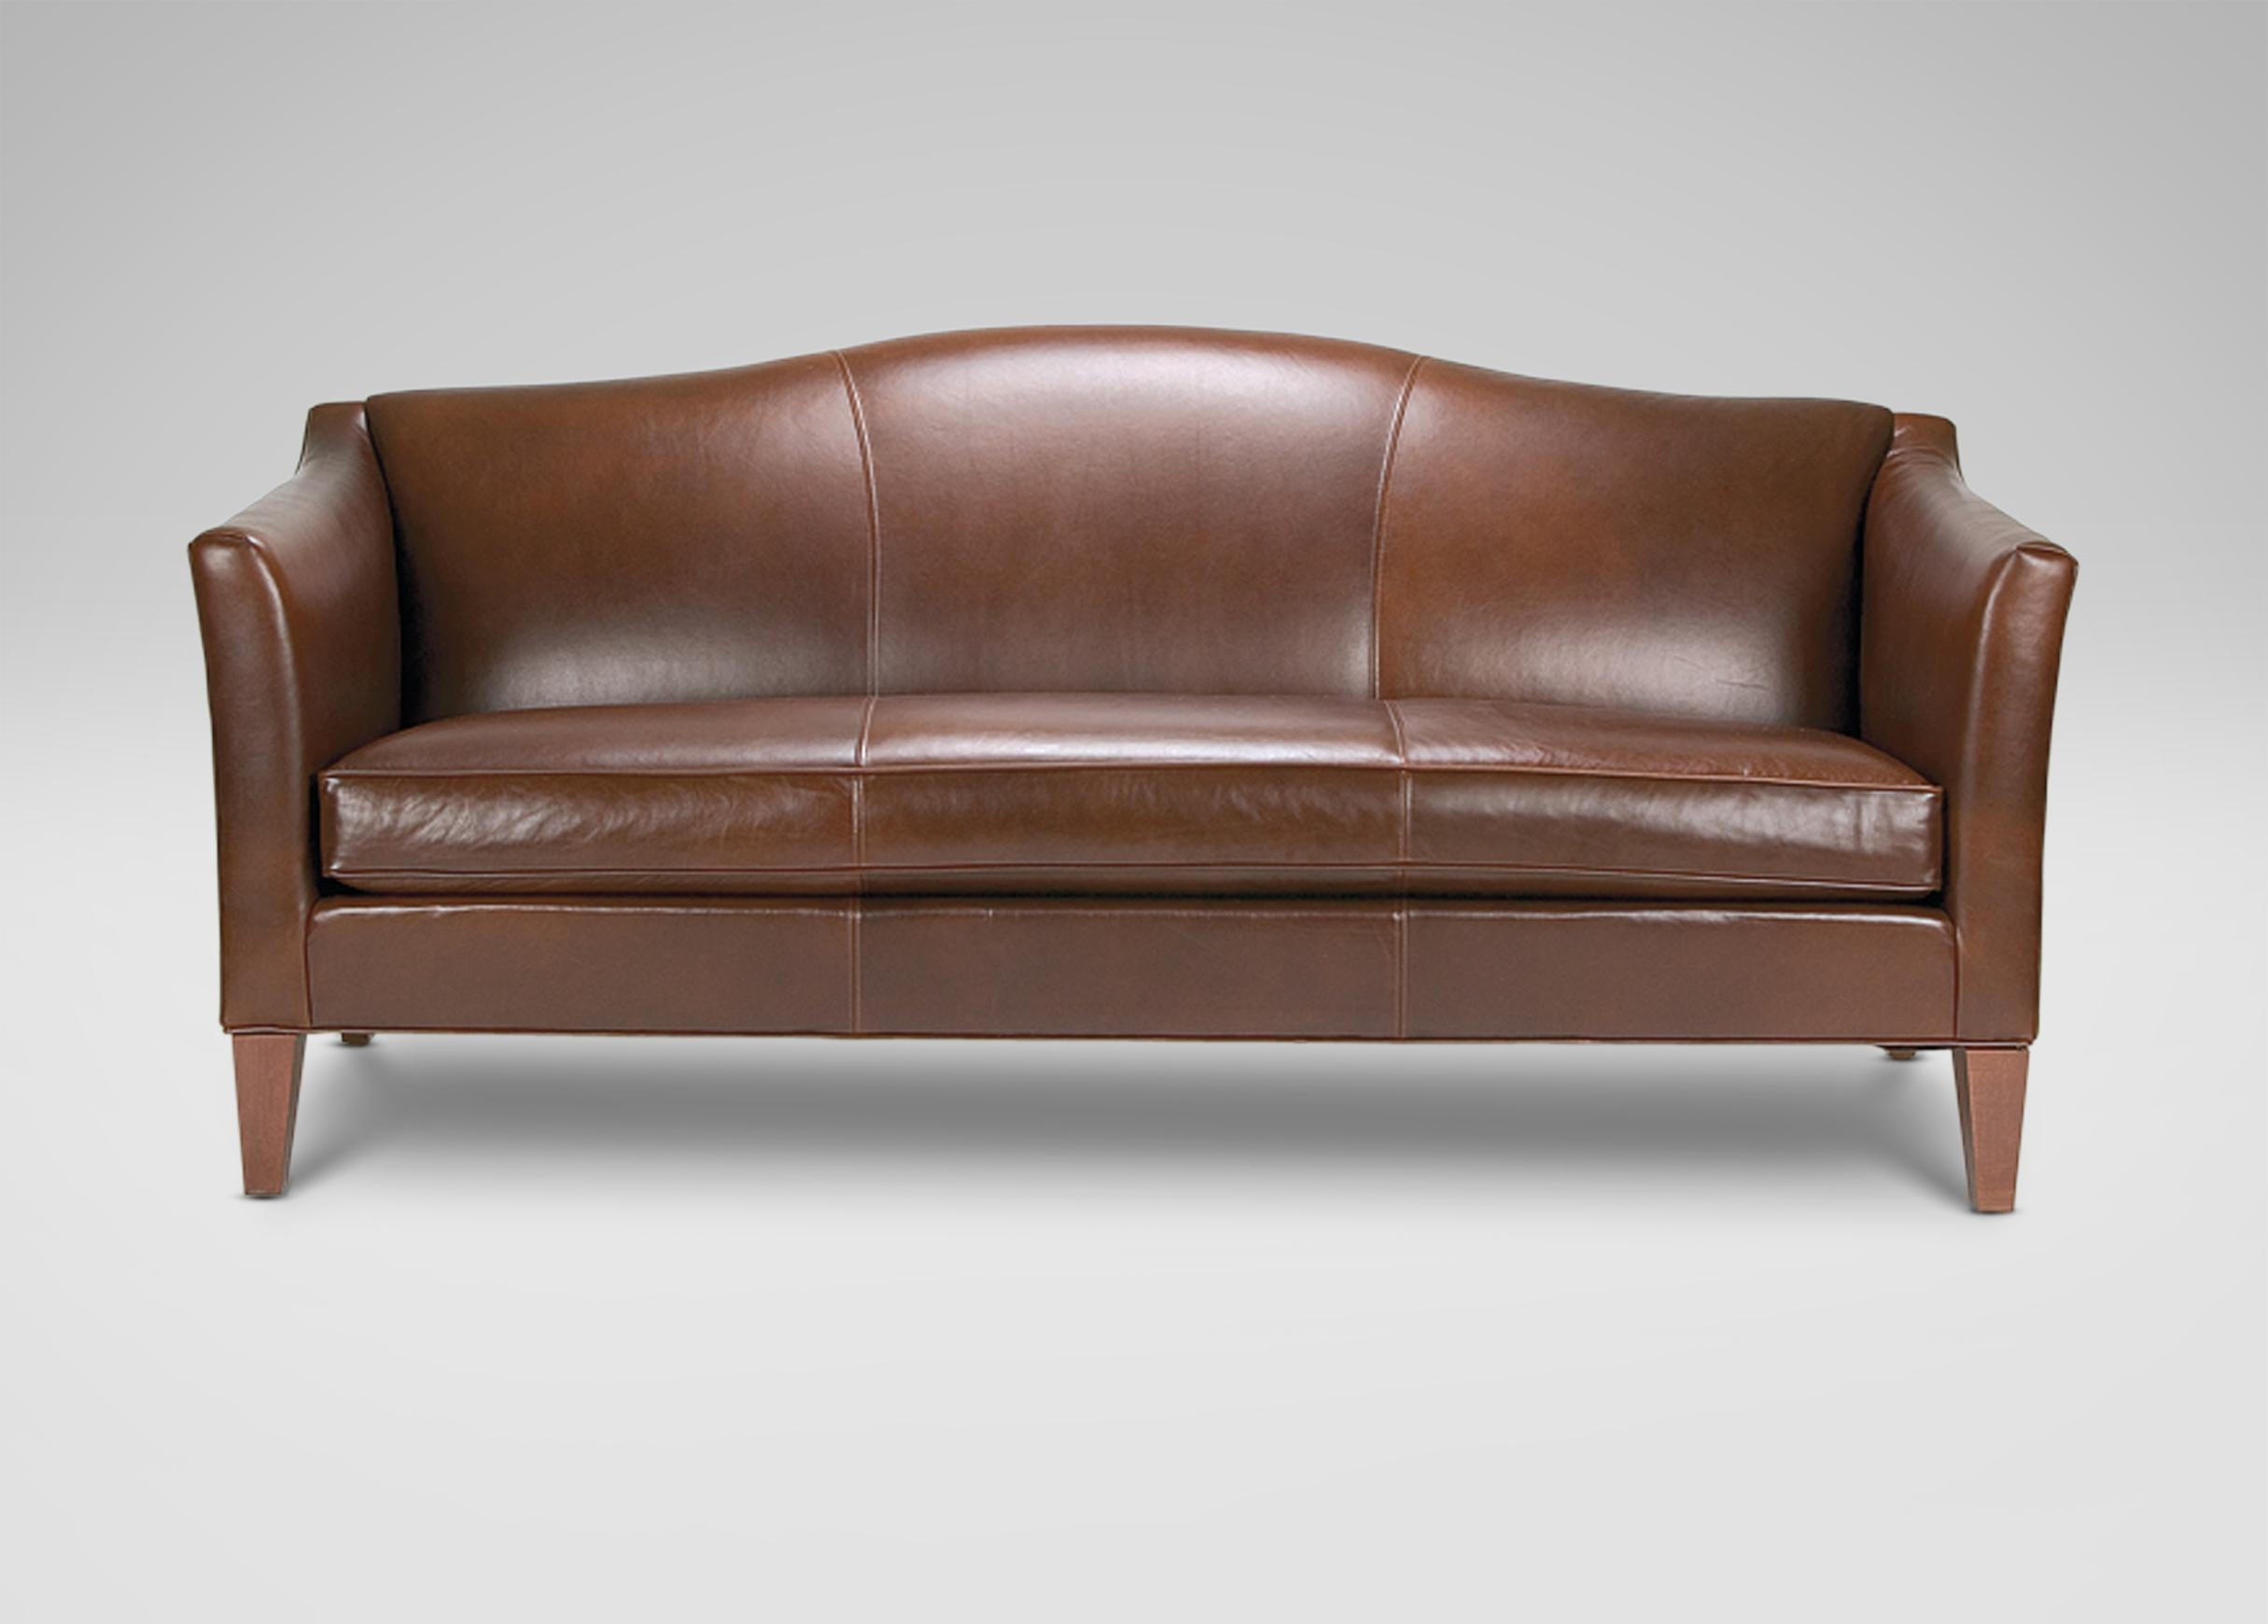 Hartwell Bench Cushion Leather Sofa – Ethan Allen | Sitegenesis With Regard To Bench Cushion Sofas (View 4 of 20)